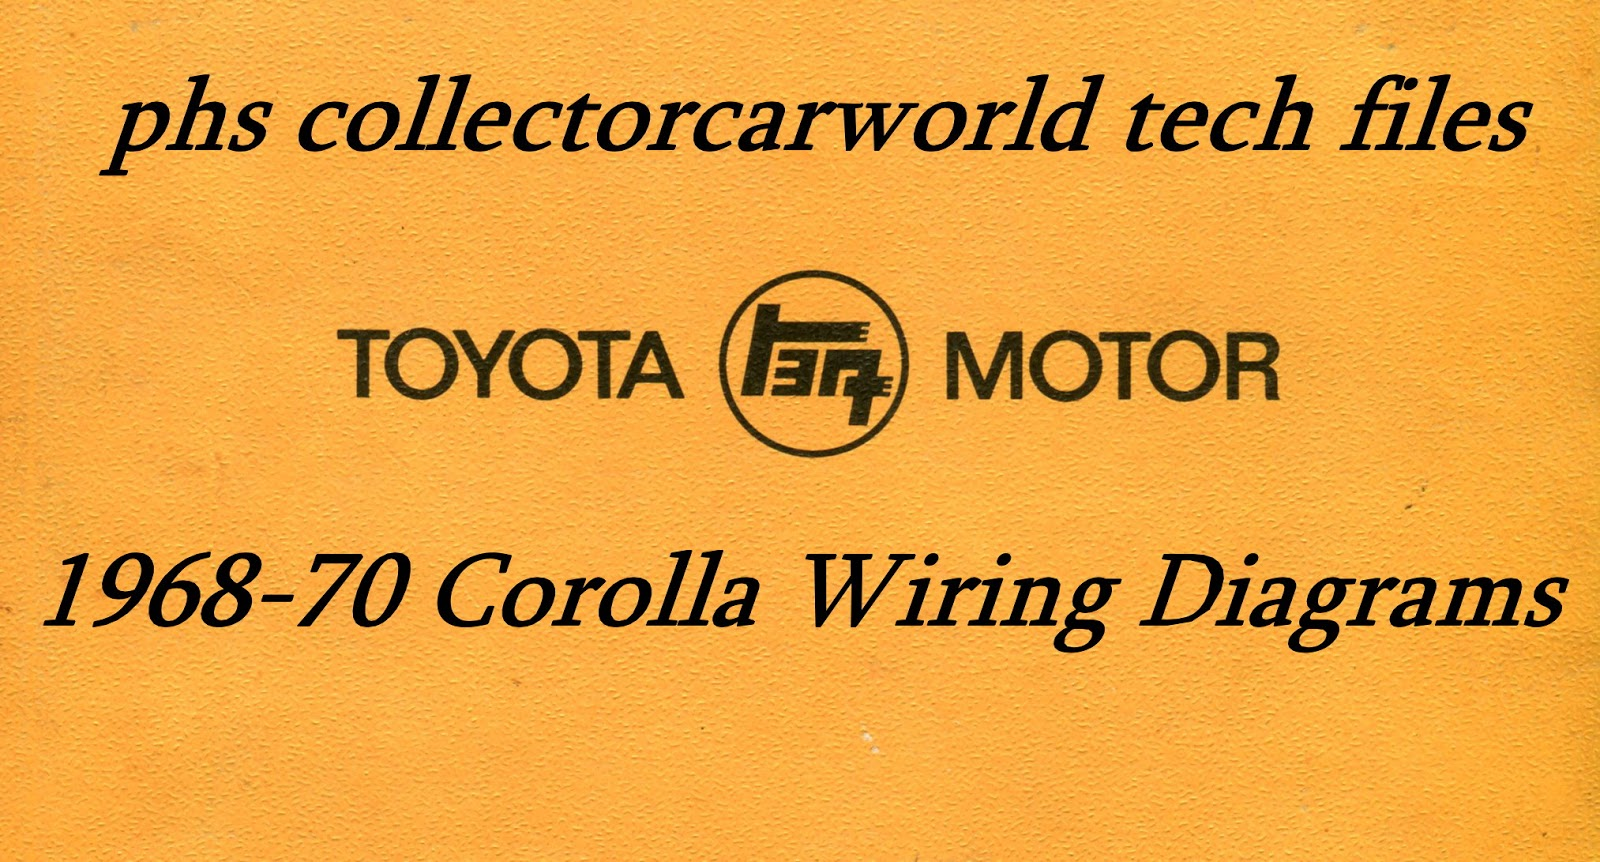 medium resolution of for this installment of tech series we present the complete wiring schematics for the 1968 1970 toyota corolla vehicles in the ke and te series from april